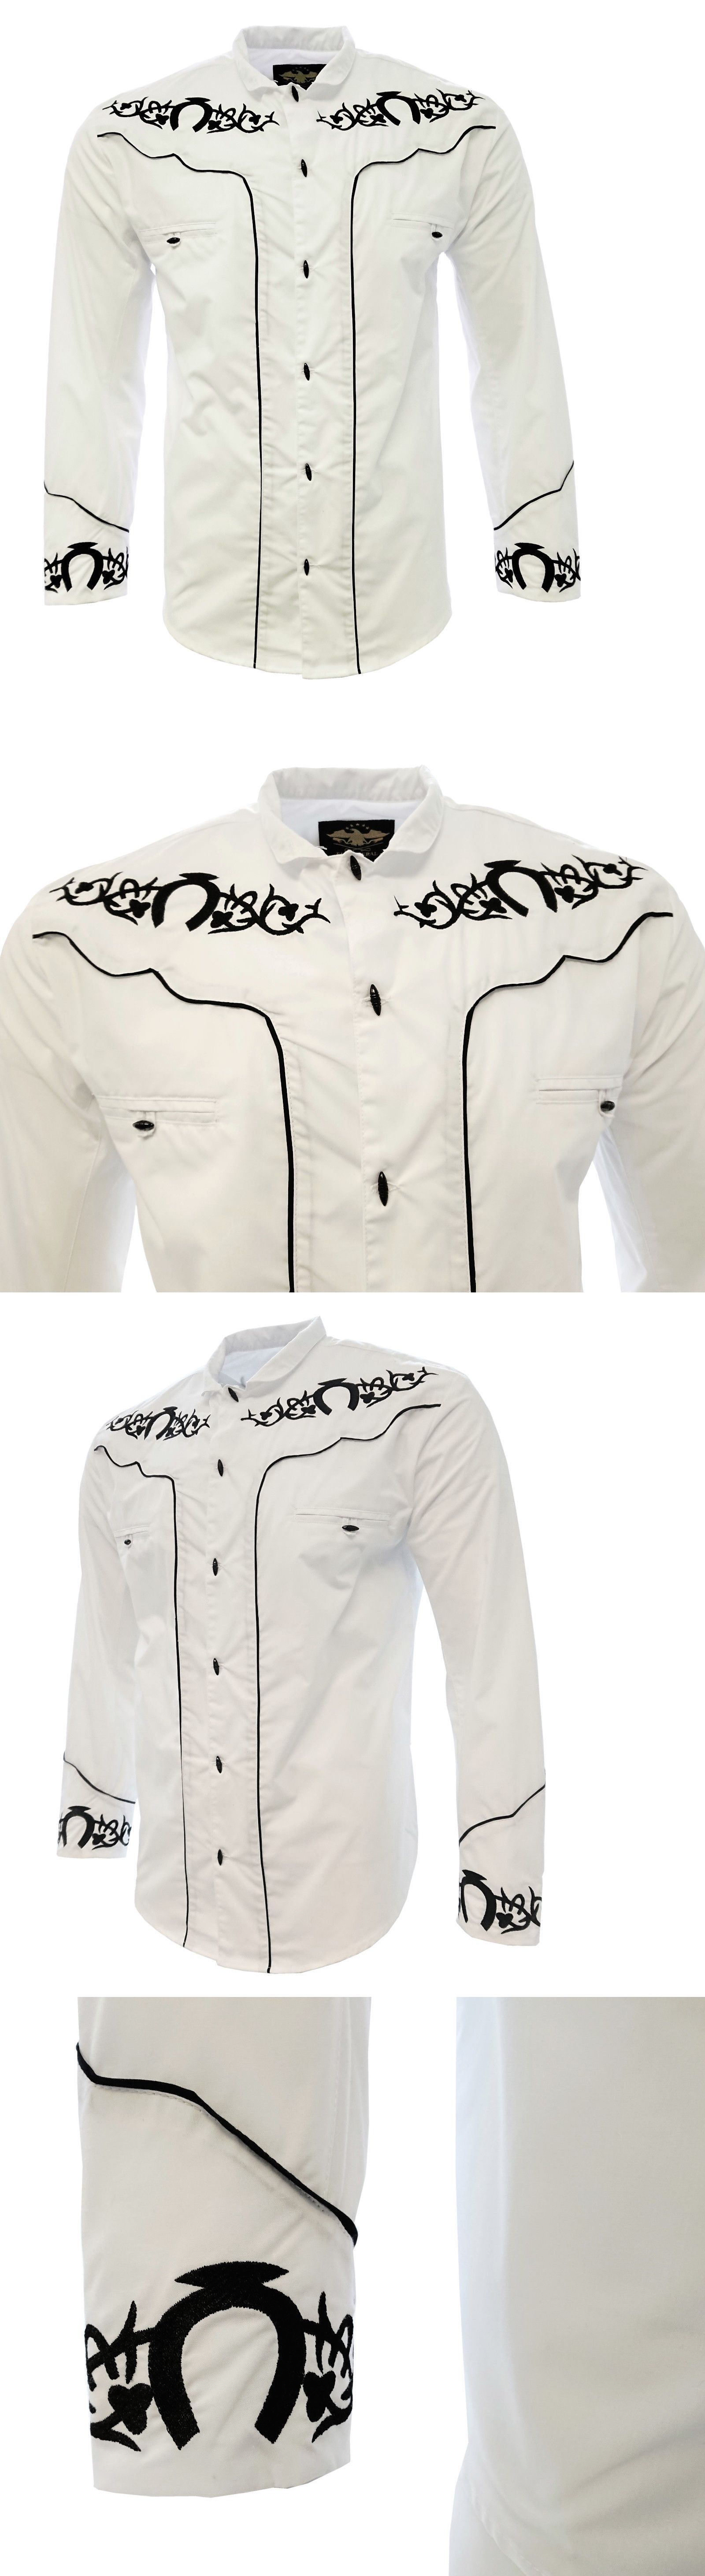 Latin America 155252  Men S Charro Shirt Camisa Charra El General Western  Wear Color White Long Sleeve -  BUY IT NOW ONLY   34.99 on eBay! a2c115d84